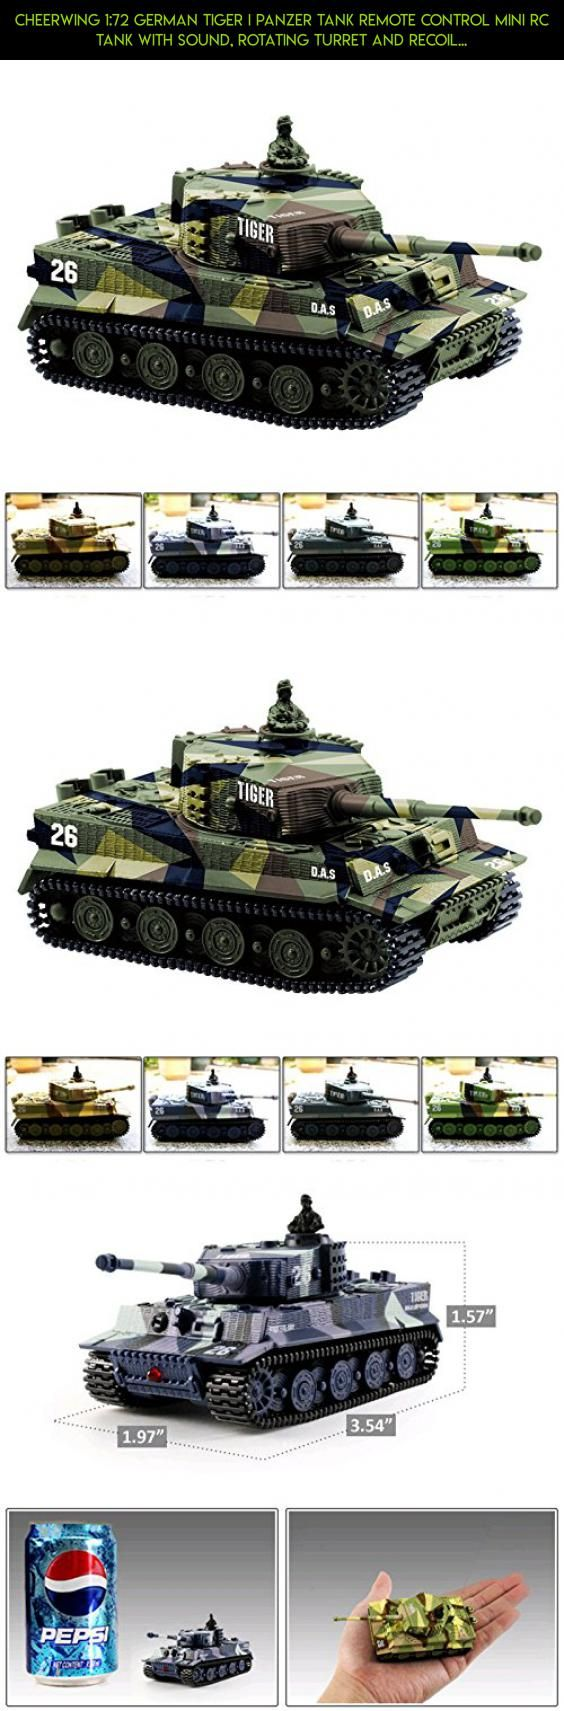 Cheerwing 1:72 German Tiger I Panzer Tank Remote Control Mini RC tank with Sound, Rotating Turret and Recoil Action When Cannon Artillery Shoots (Vary Colors) #technology #products #3.7v #fpv #drone #shopping #plans #parts #cheerwing #gadgets #racing #kit #camera #tech